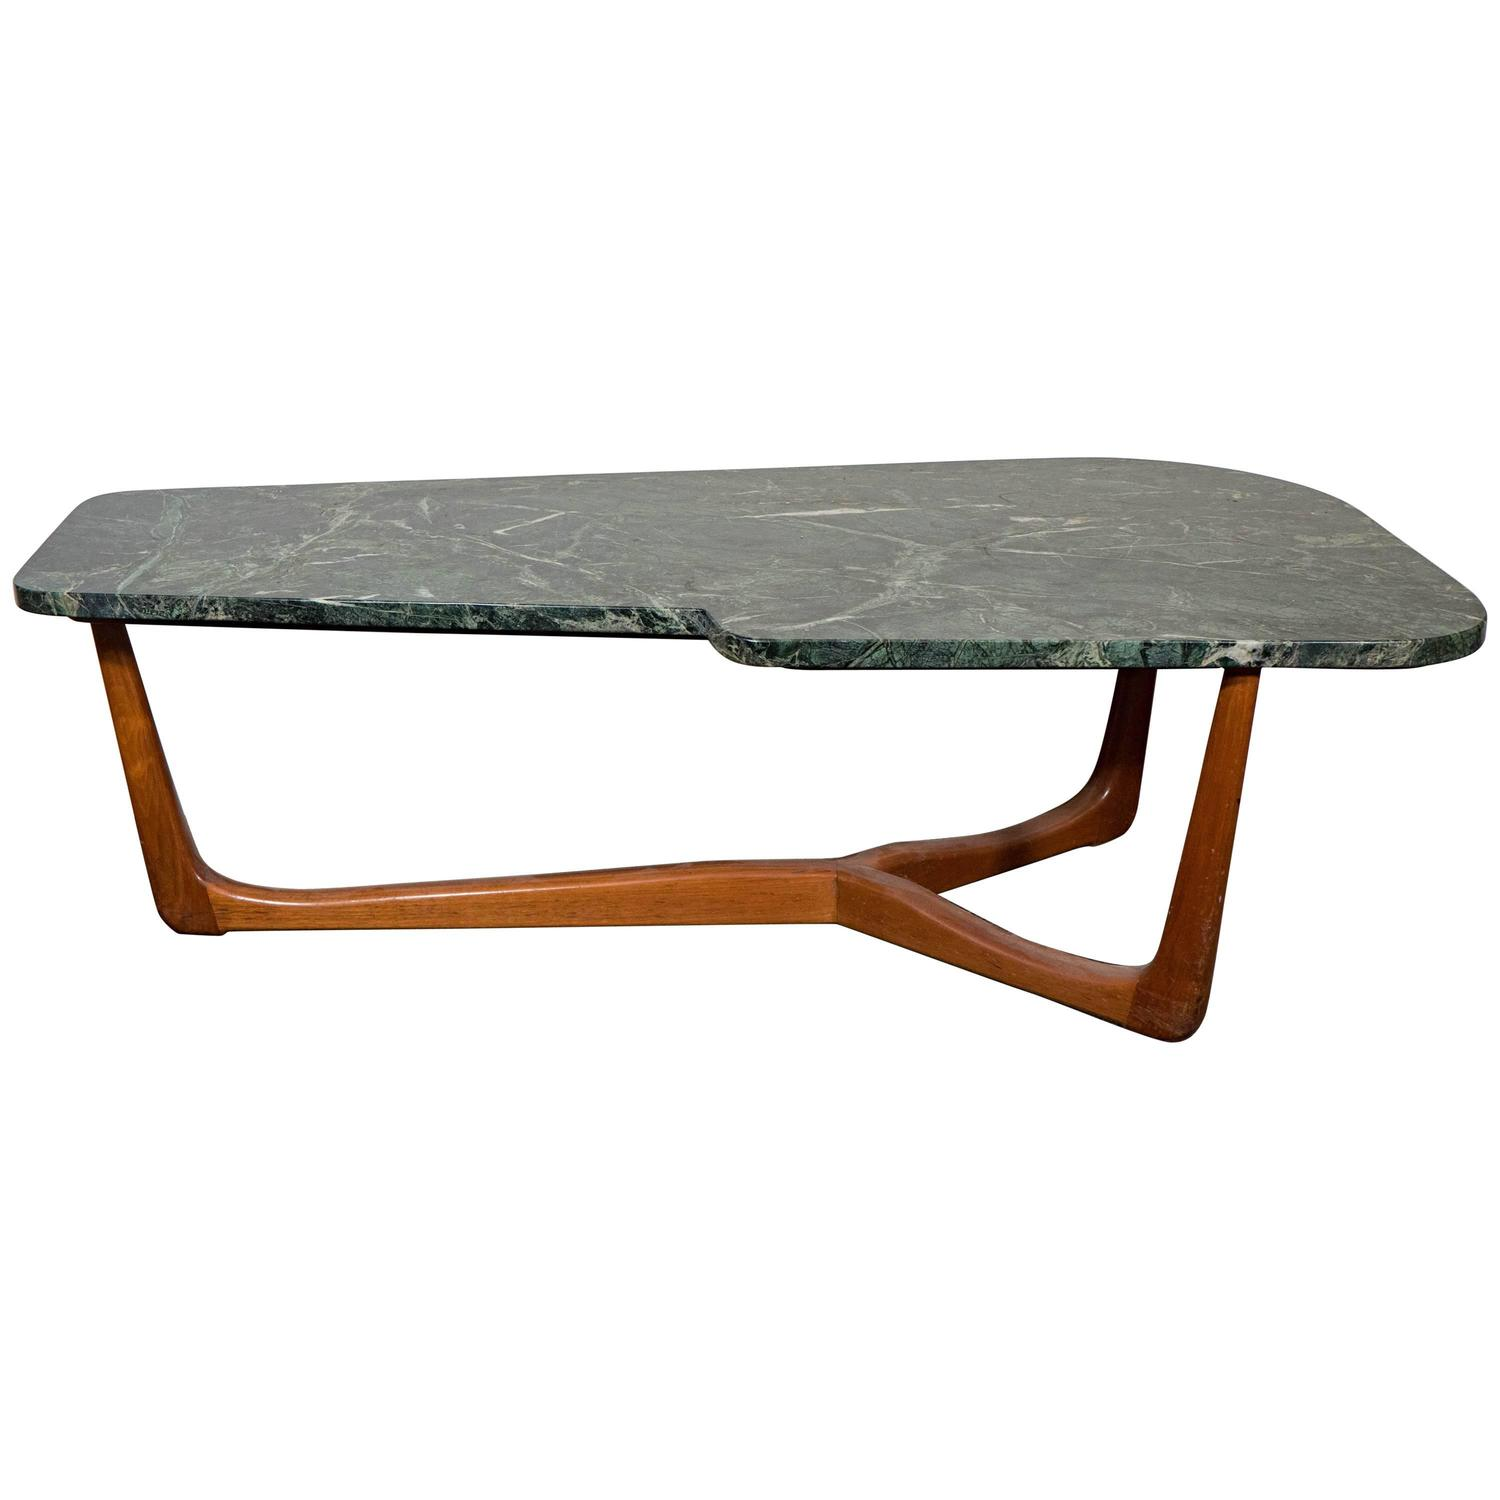 Vladimir Kagan Style Asymmetric Coffee Table With Green Marble Top For Sale At 1stdibs